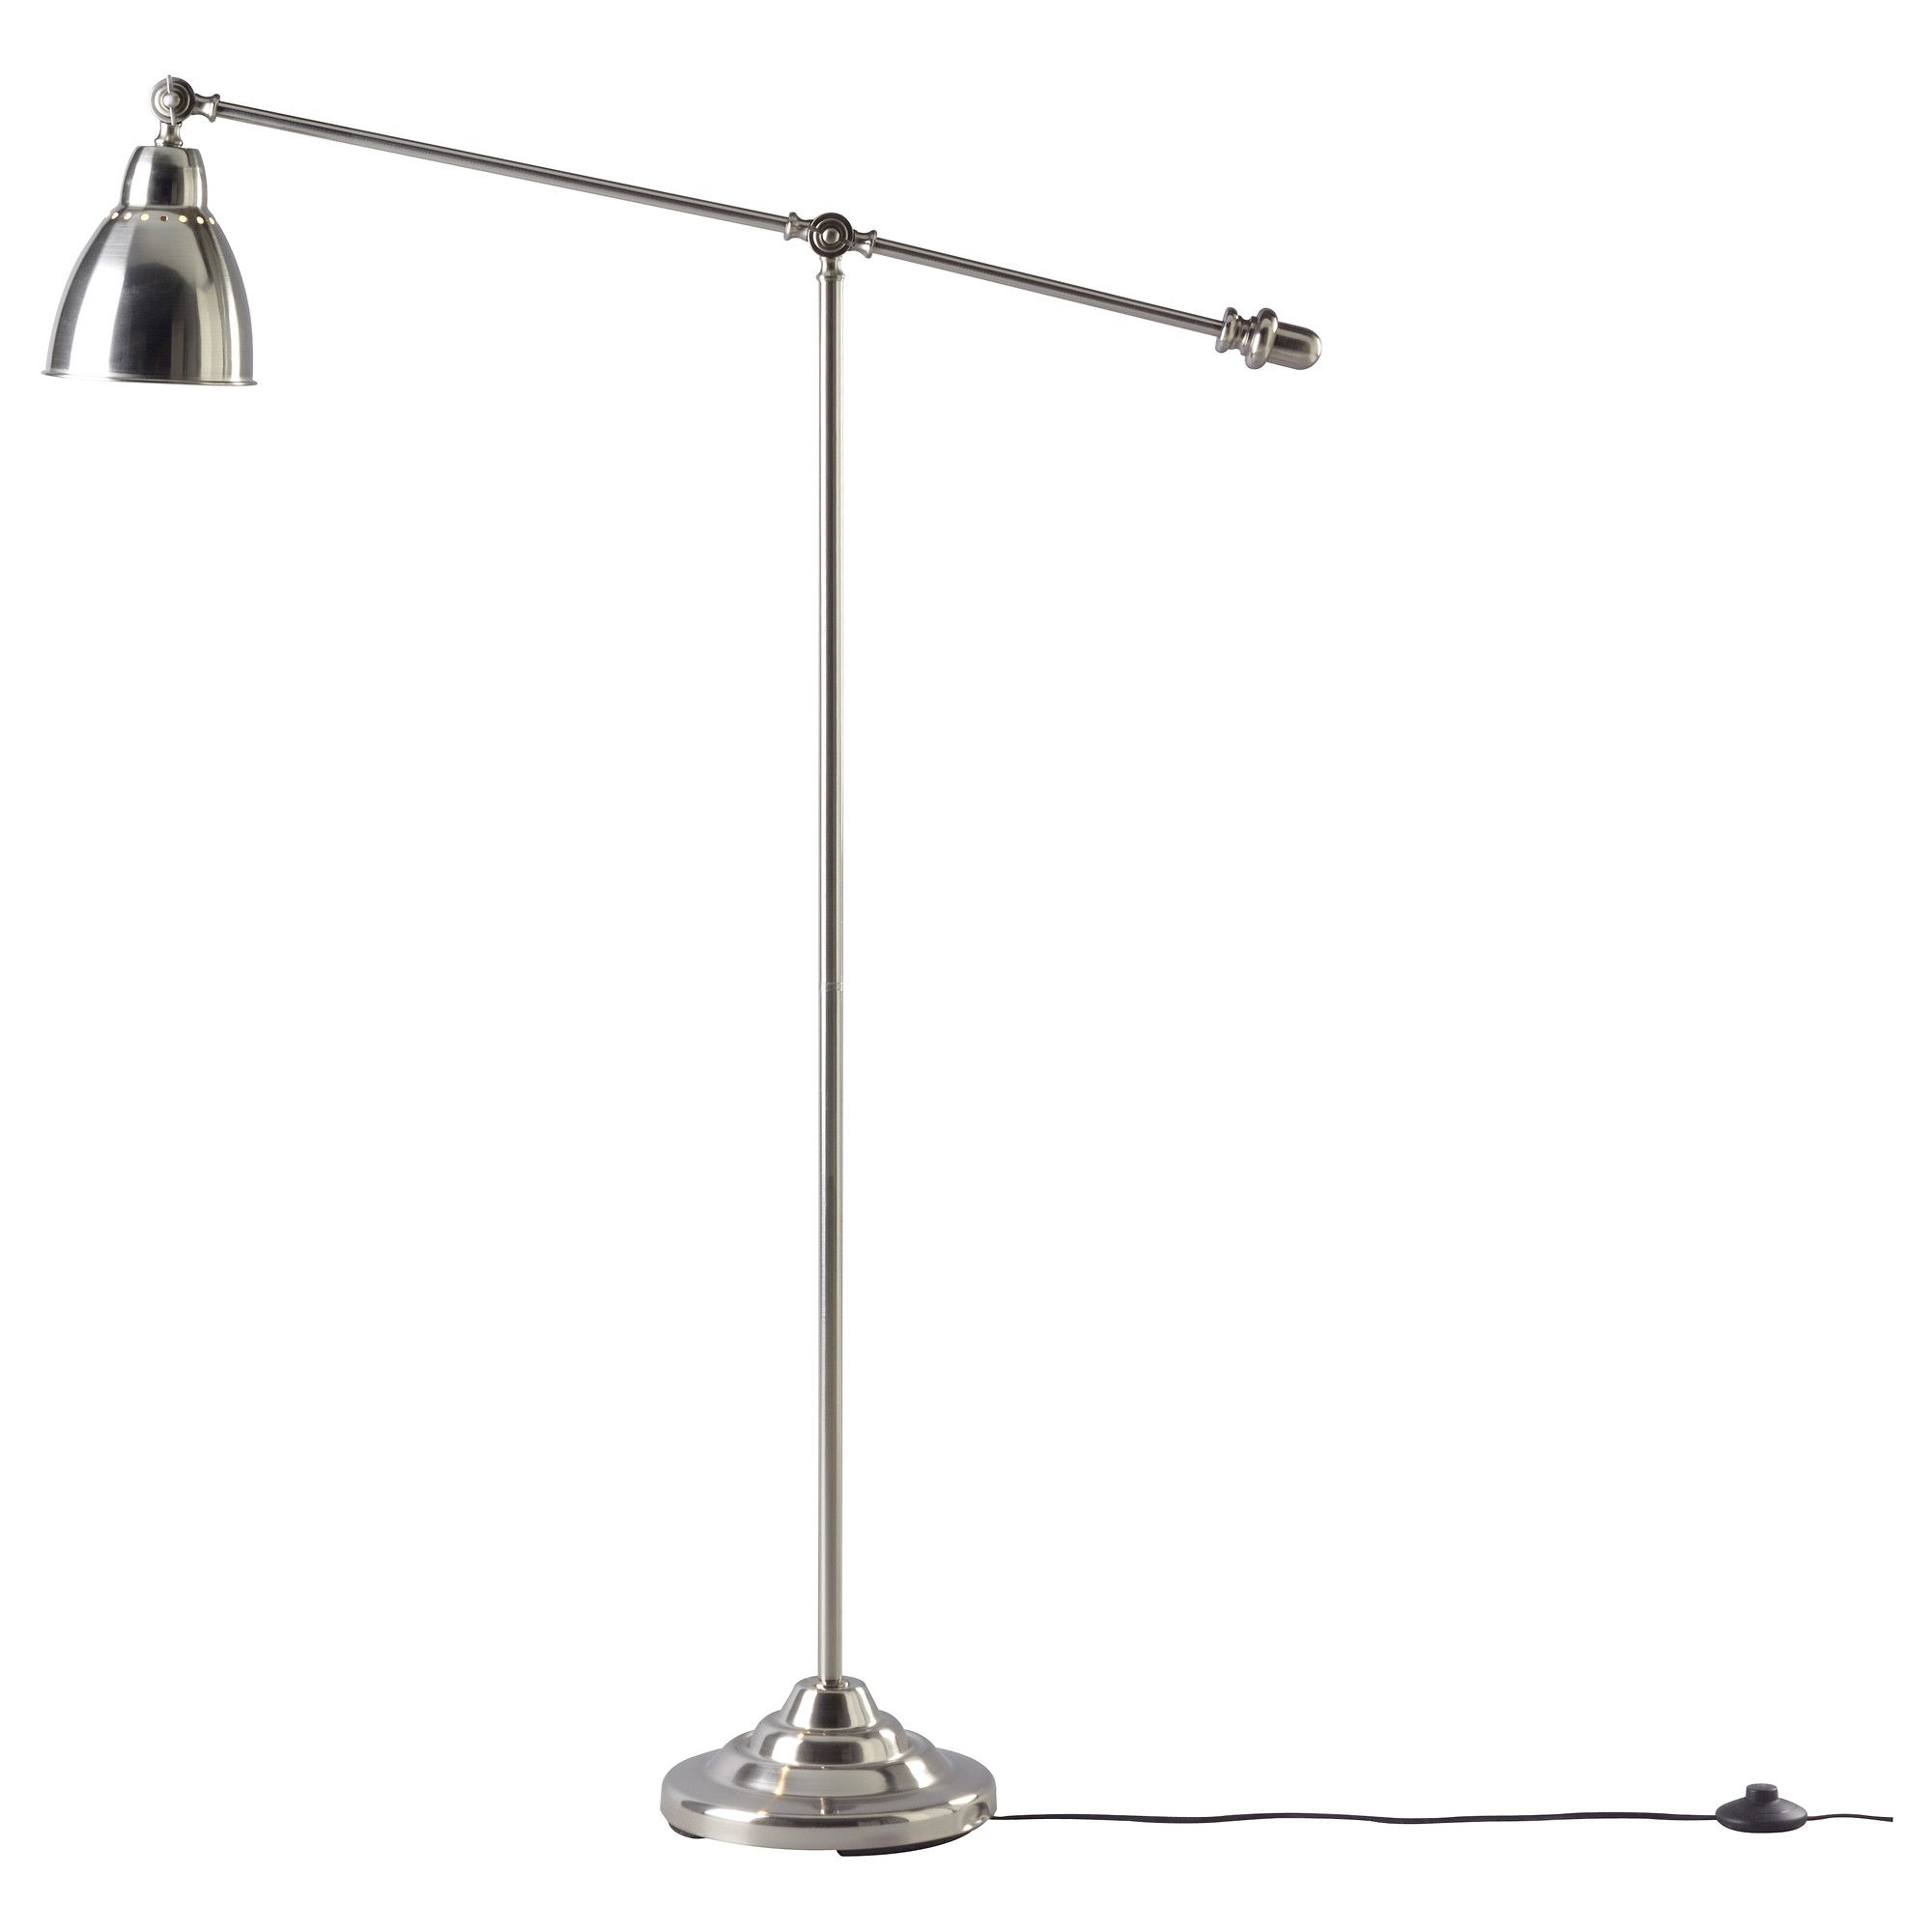 IKEA BAROMETER Floor/reading Lamp Nickel Plated You Can Easily Direct The  Light Where You Want It Because The Lamp Arm And Head Are Adjustable. Part 98